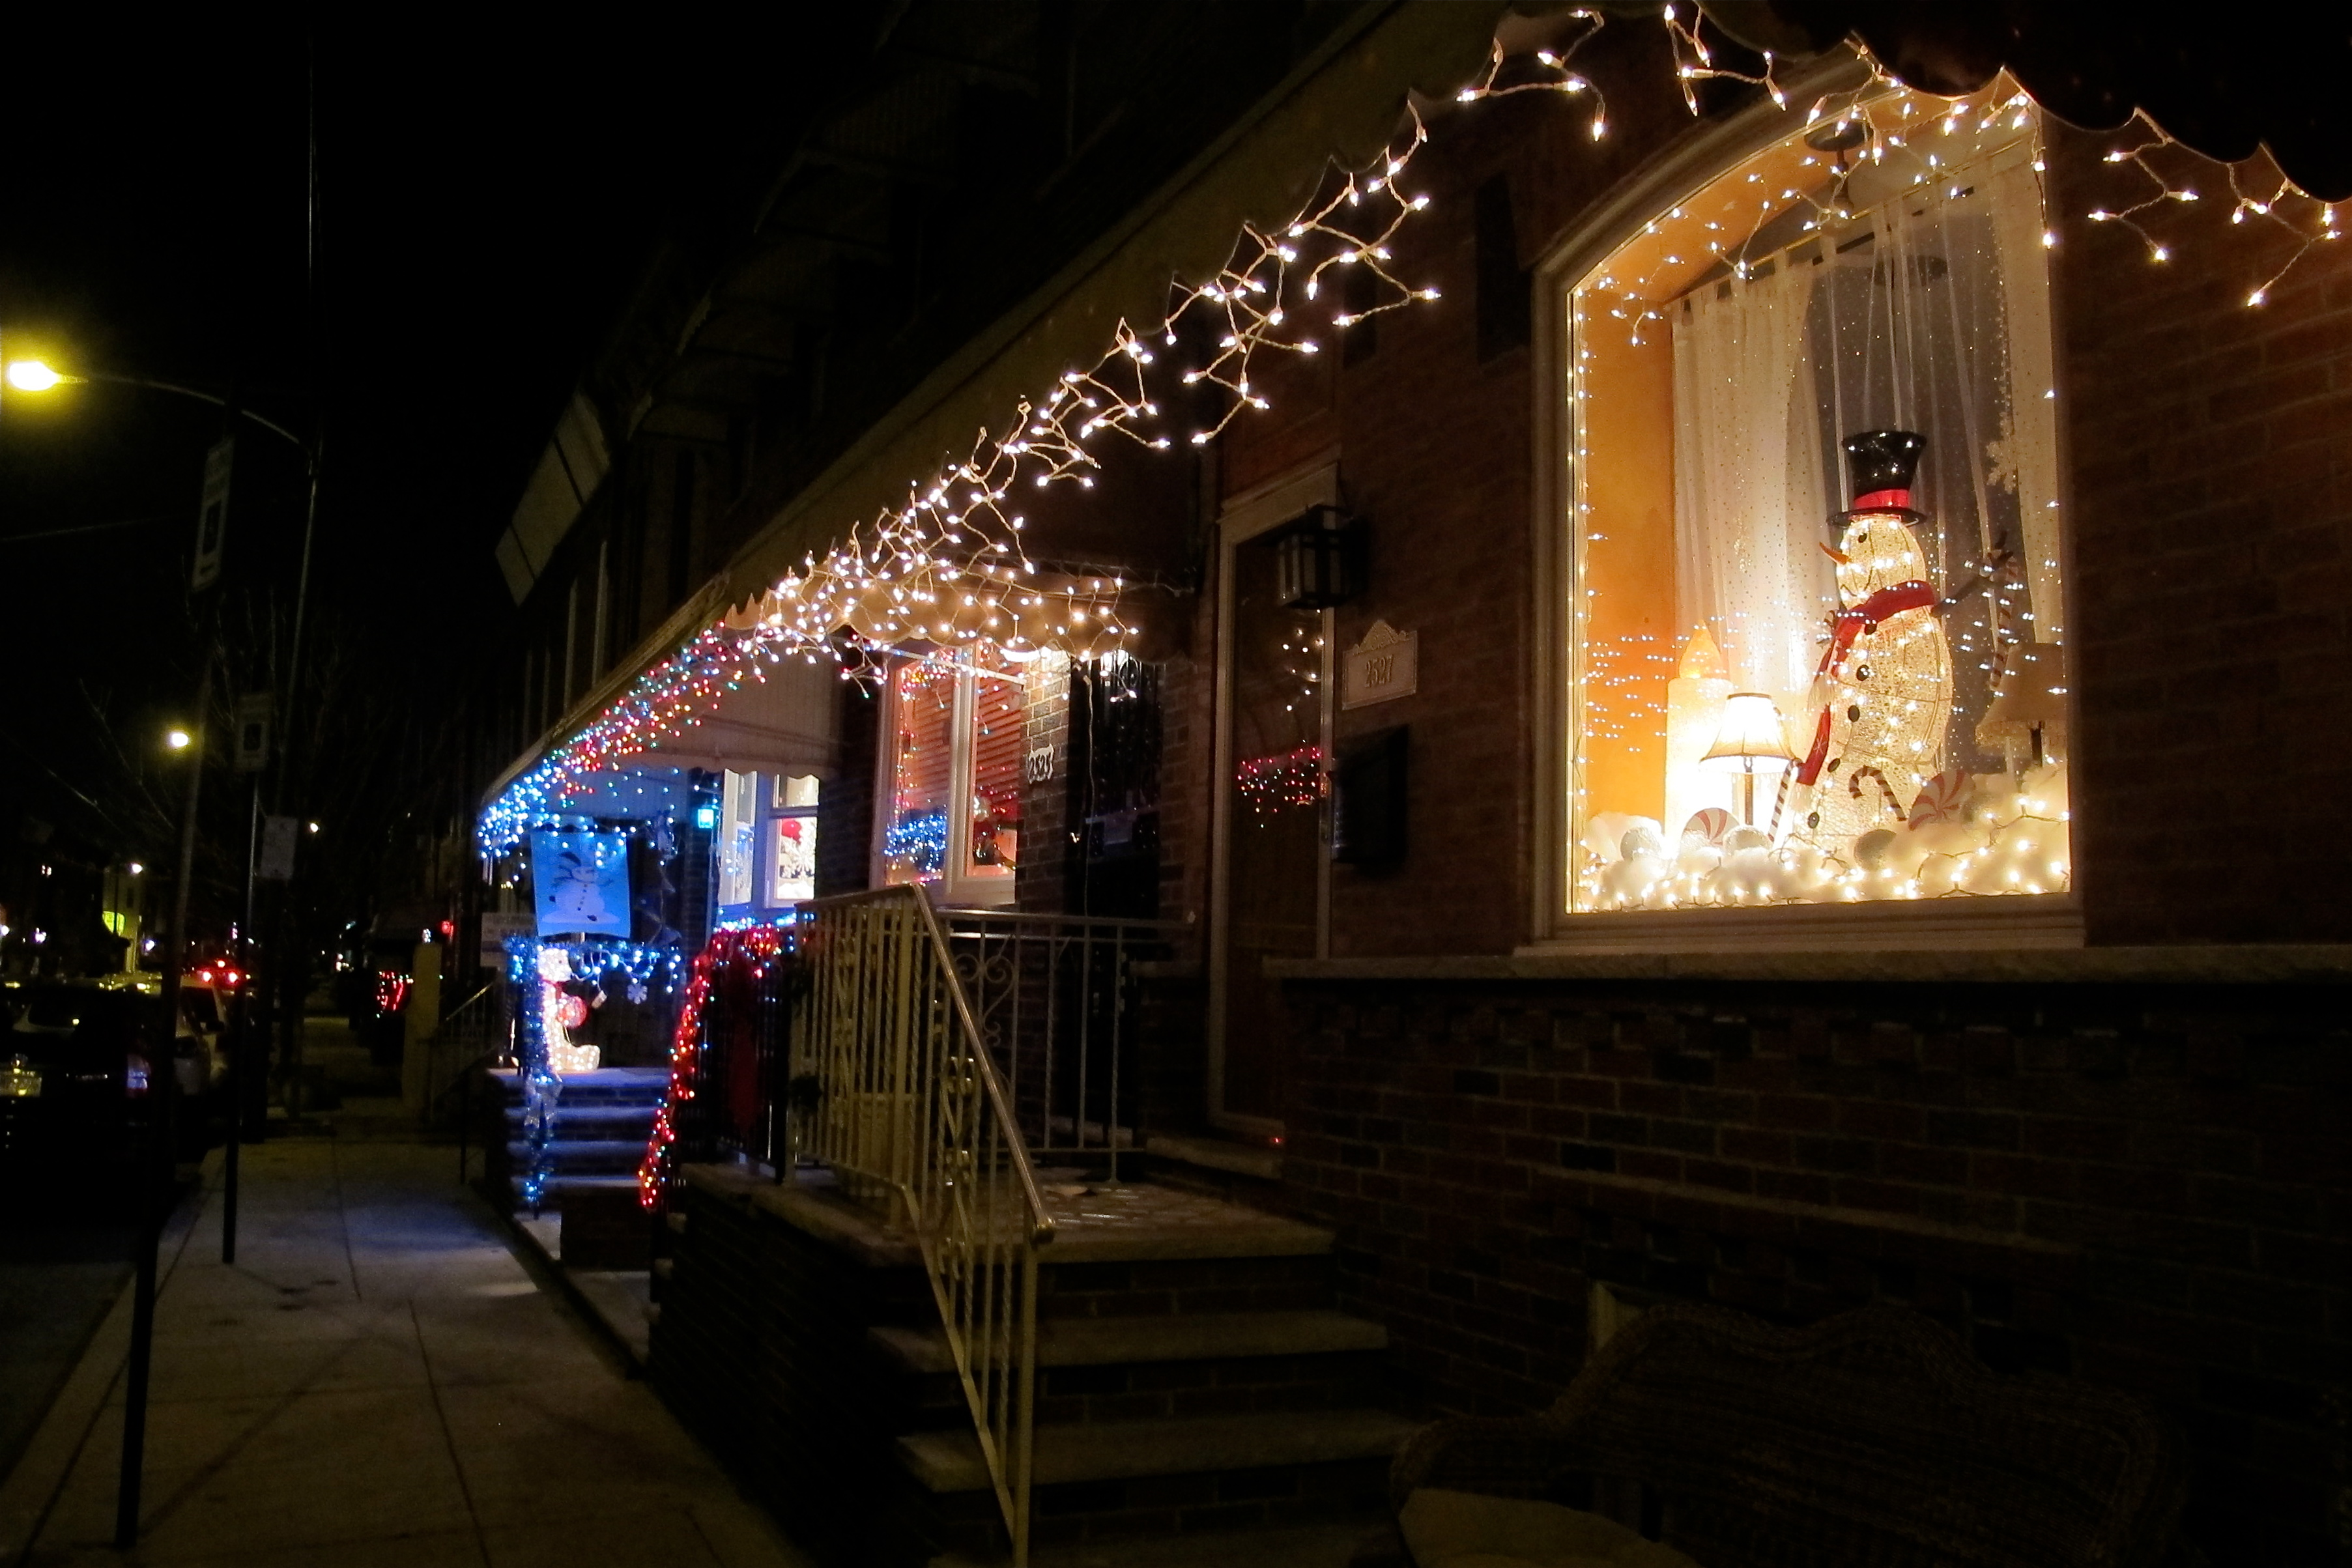 Take in the lights and window displays of South Philly on the Bicycle Coalition's Fun Ride this month.